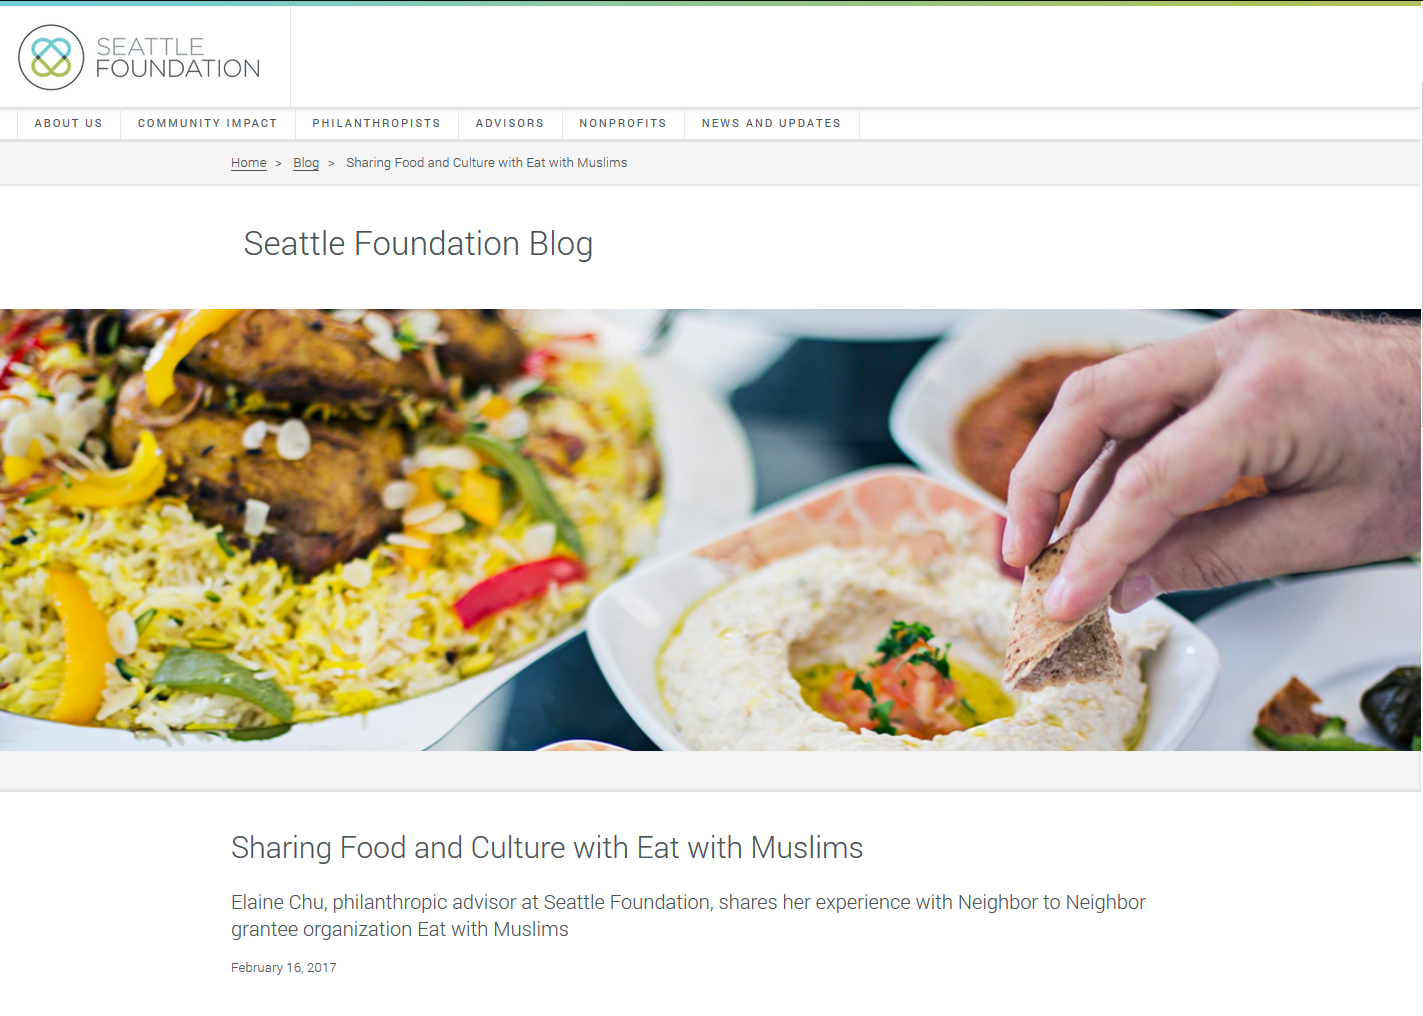 Sharing Food and Culture with Eat with Muslims - 2/16/2017: Elaine Chu, philanthropic advisor at Seattle Foundation, shares her experience with Neighbor to Neighbor grantee organization Eat with Muslims.